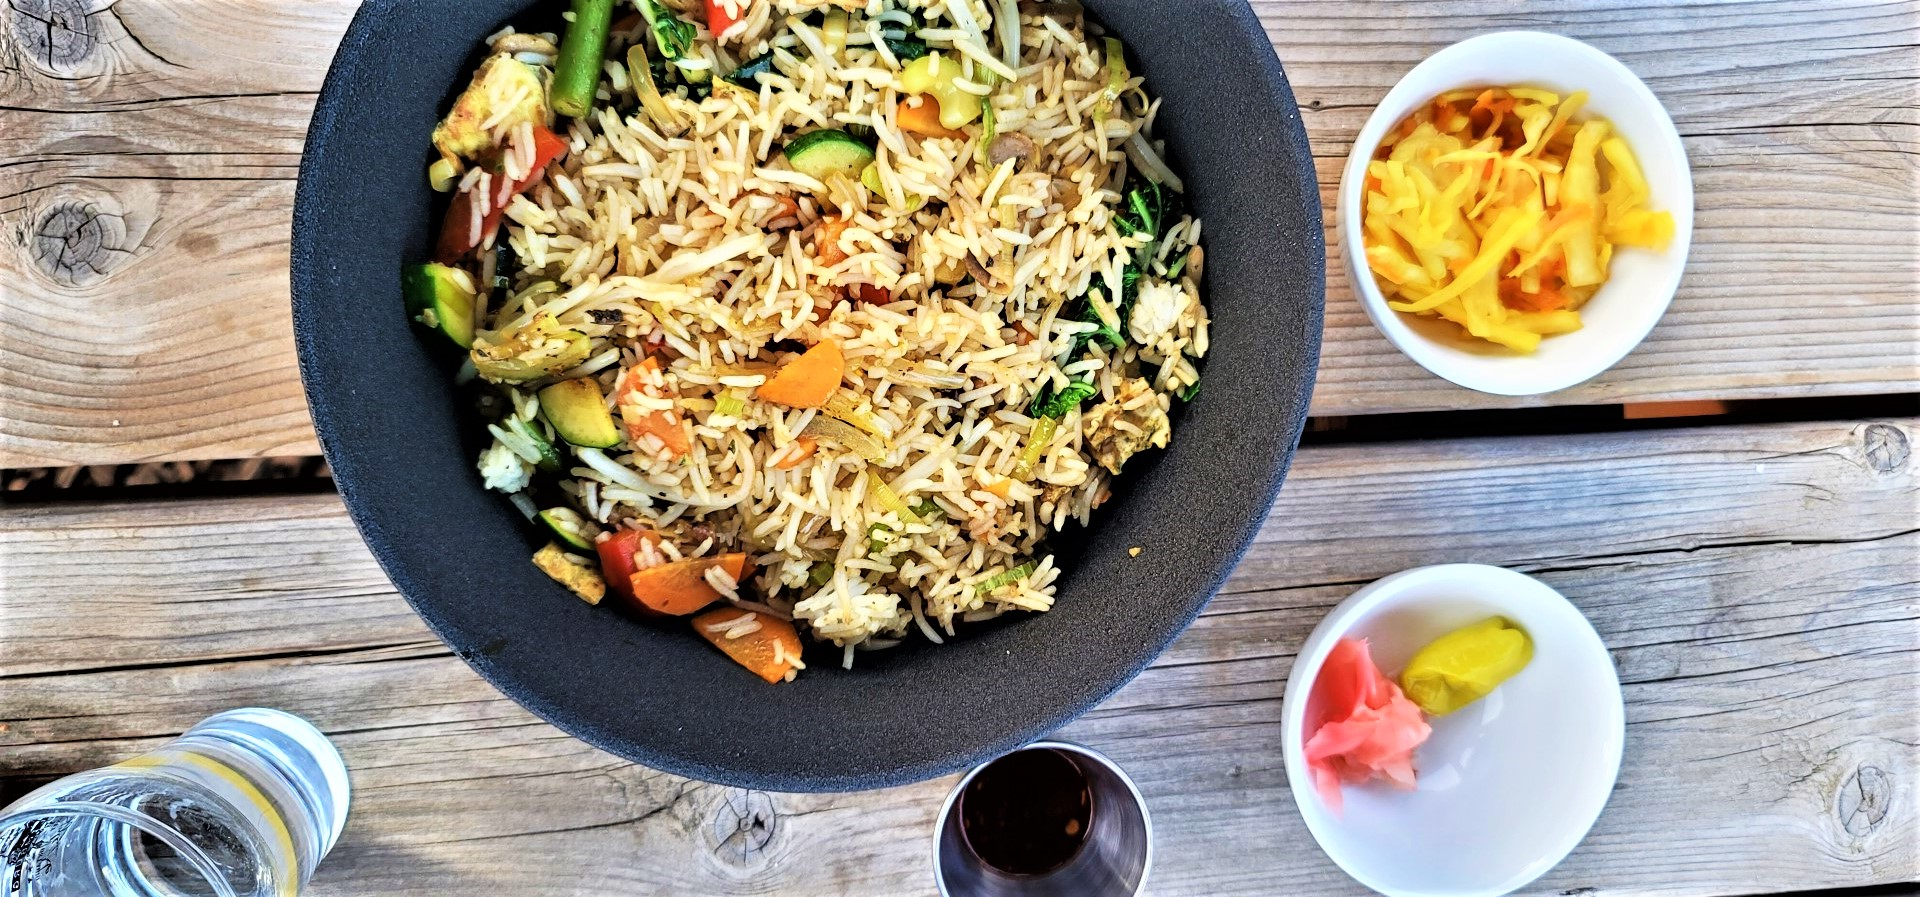 Nasi Goreng on table with condiments